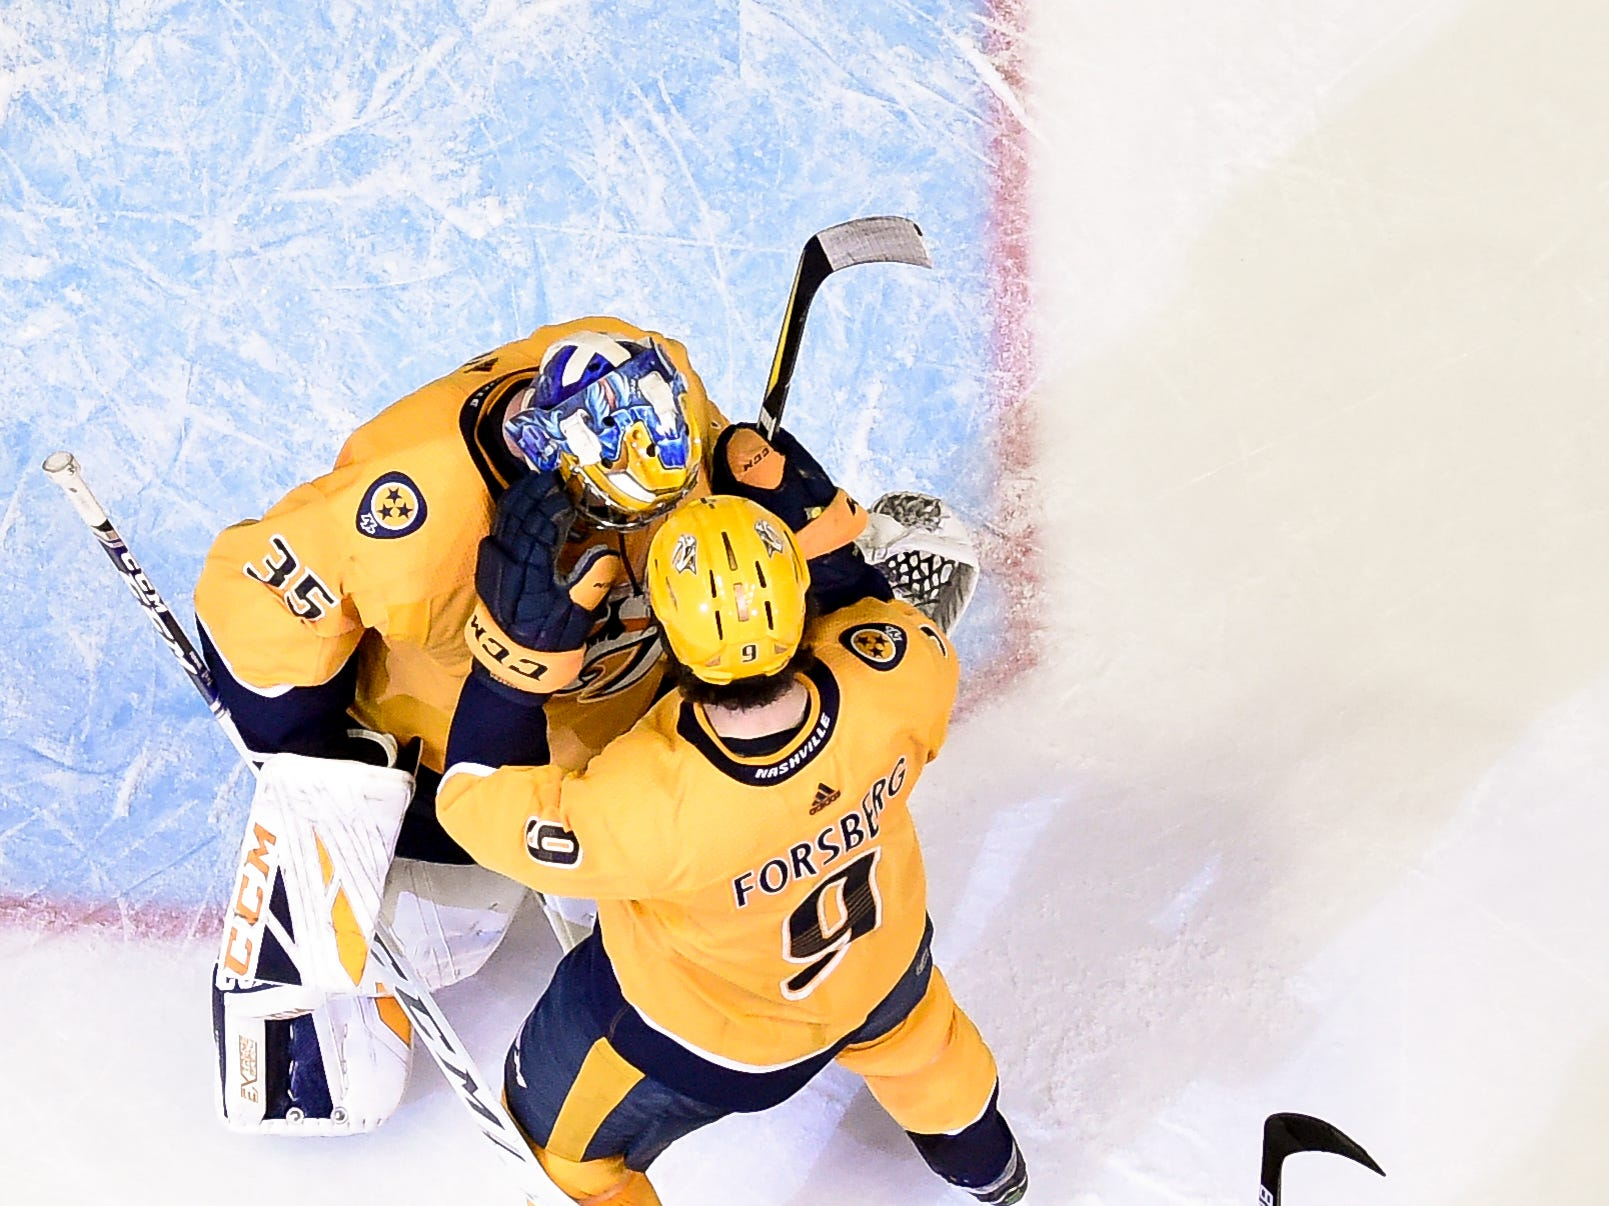 Nashville Predators goaltender Pekka Rinne (35) and left wing Filip Forsberg (9) celebrate their victory over the Arizona Coyotes at Bridgestone Arena in Nashville, Tenn., Tuesday, Feb. 5, 2019.